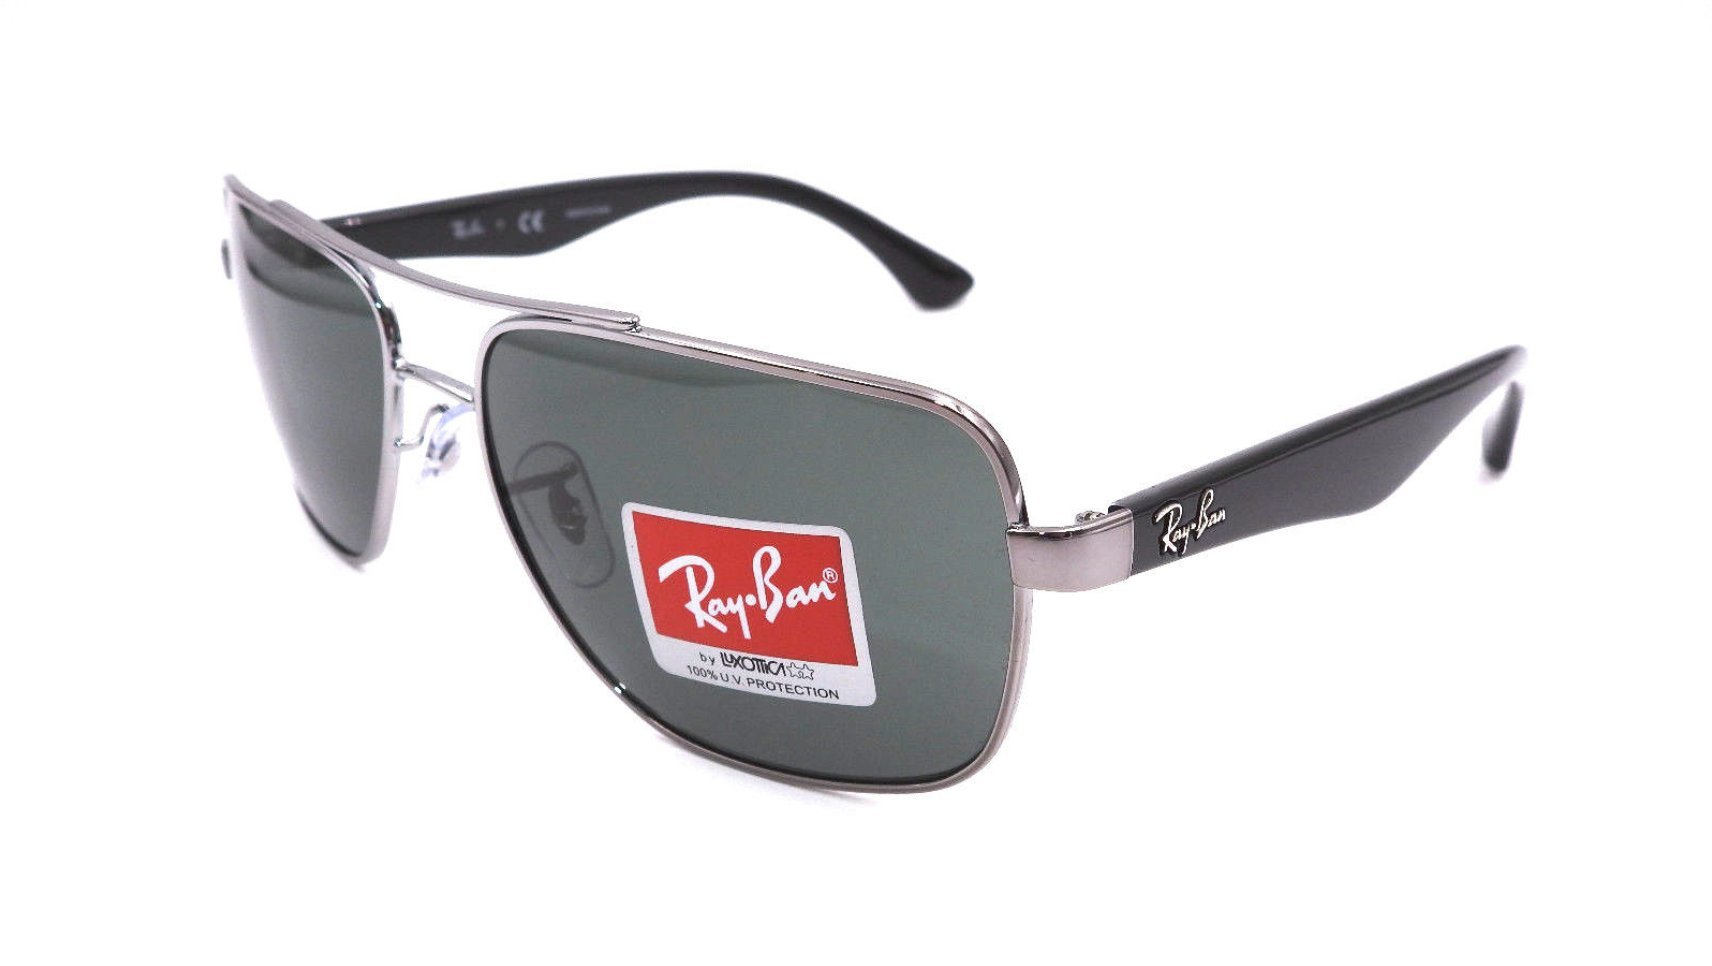 Ray-Ban Men's Rb3483 Square Sunglasses Gunmetal 60.0 mm